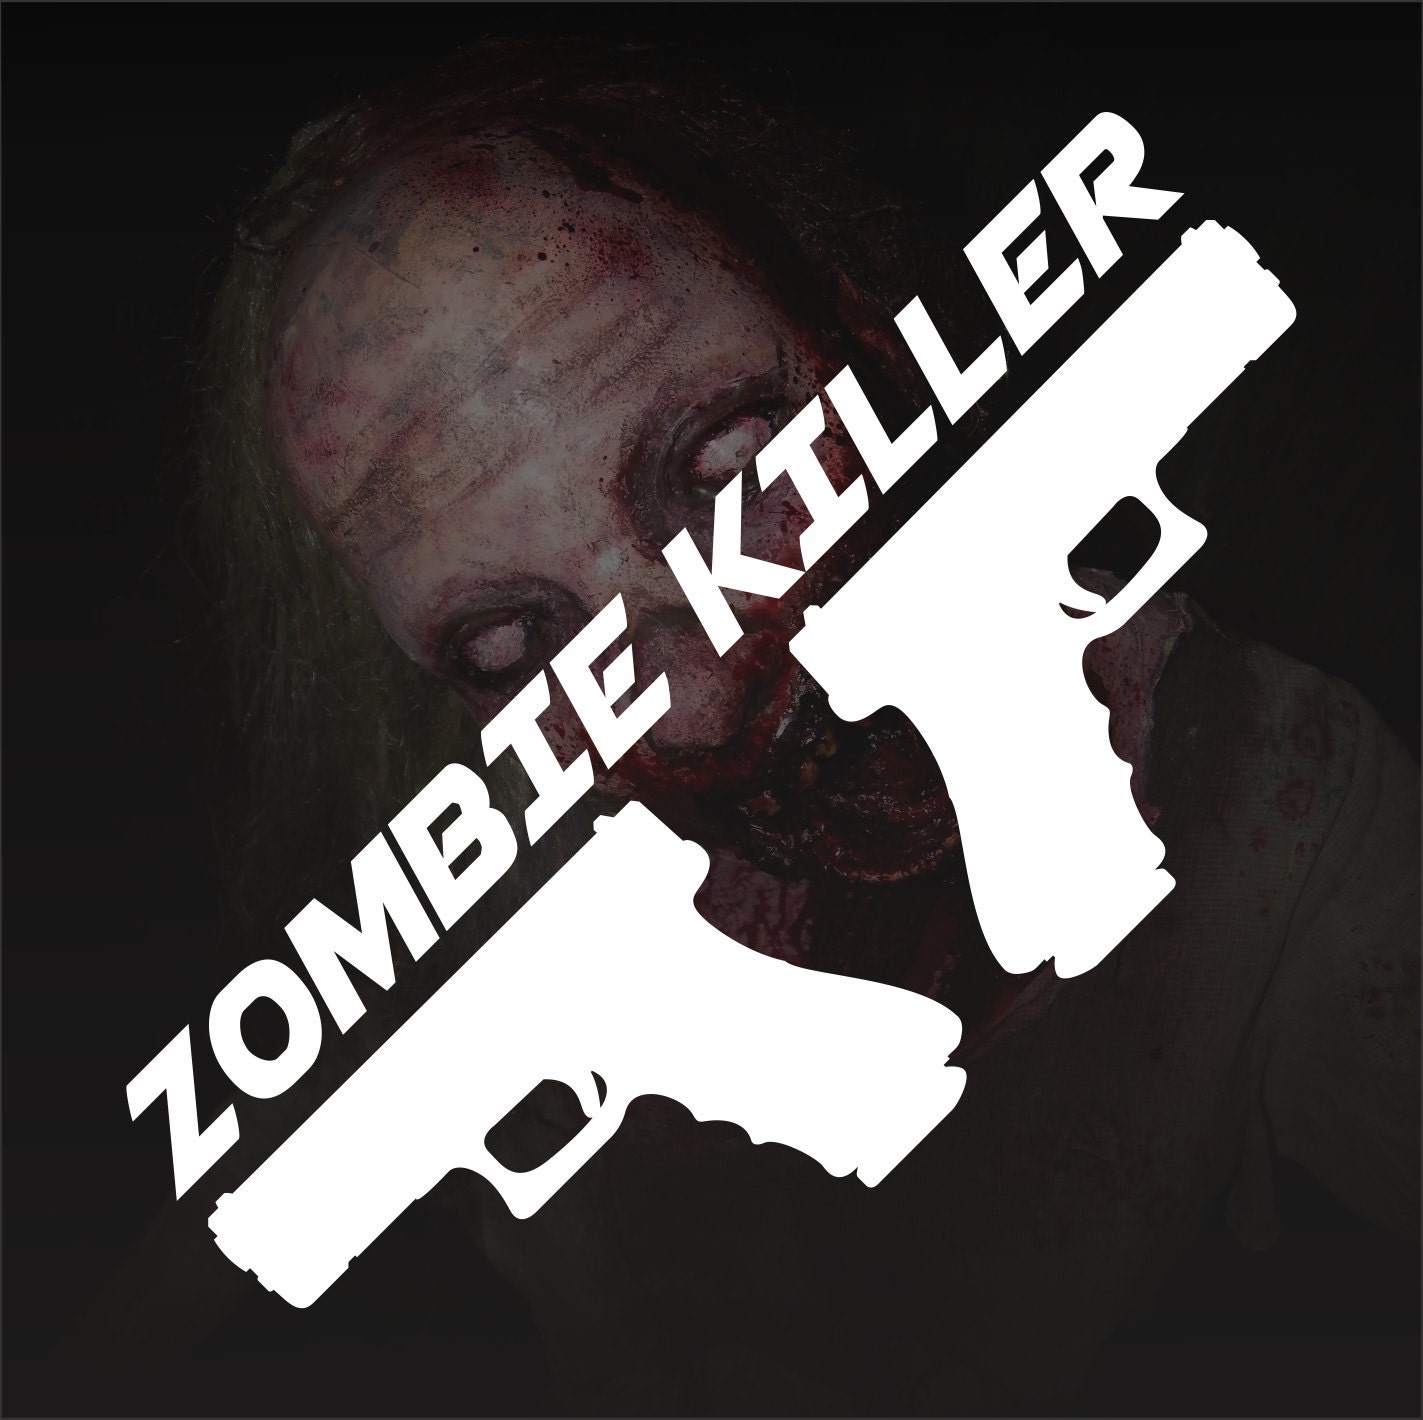 Zombie Killer Bumper Sticker Vinyl Decal by ...